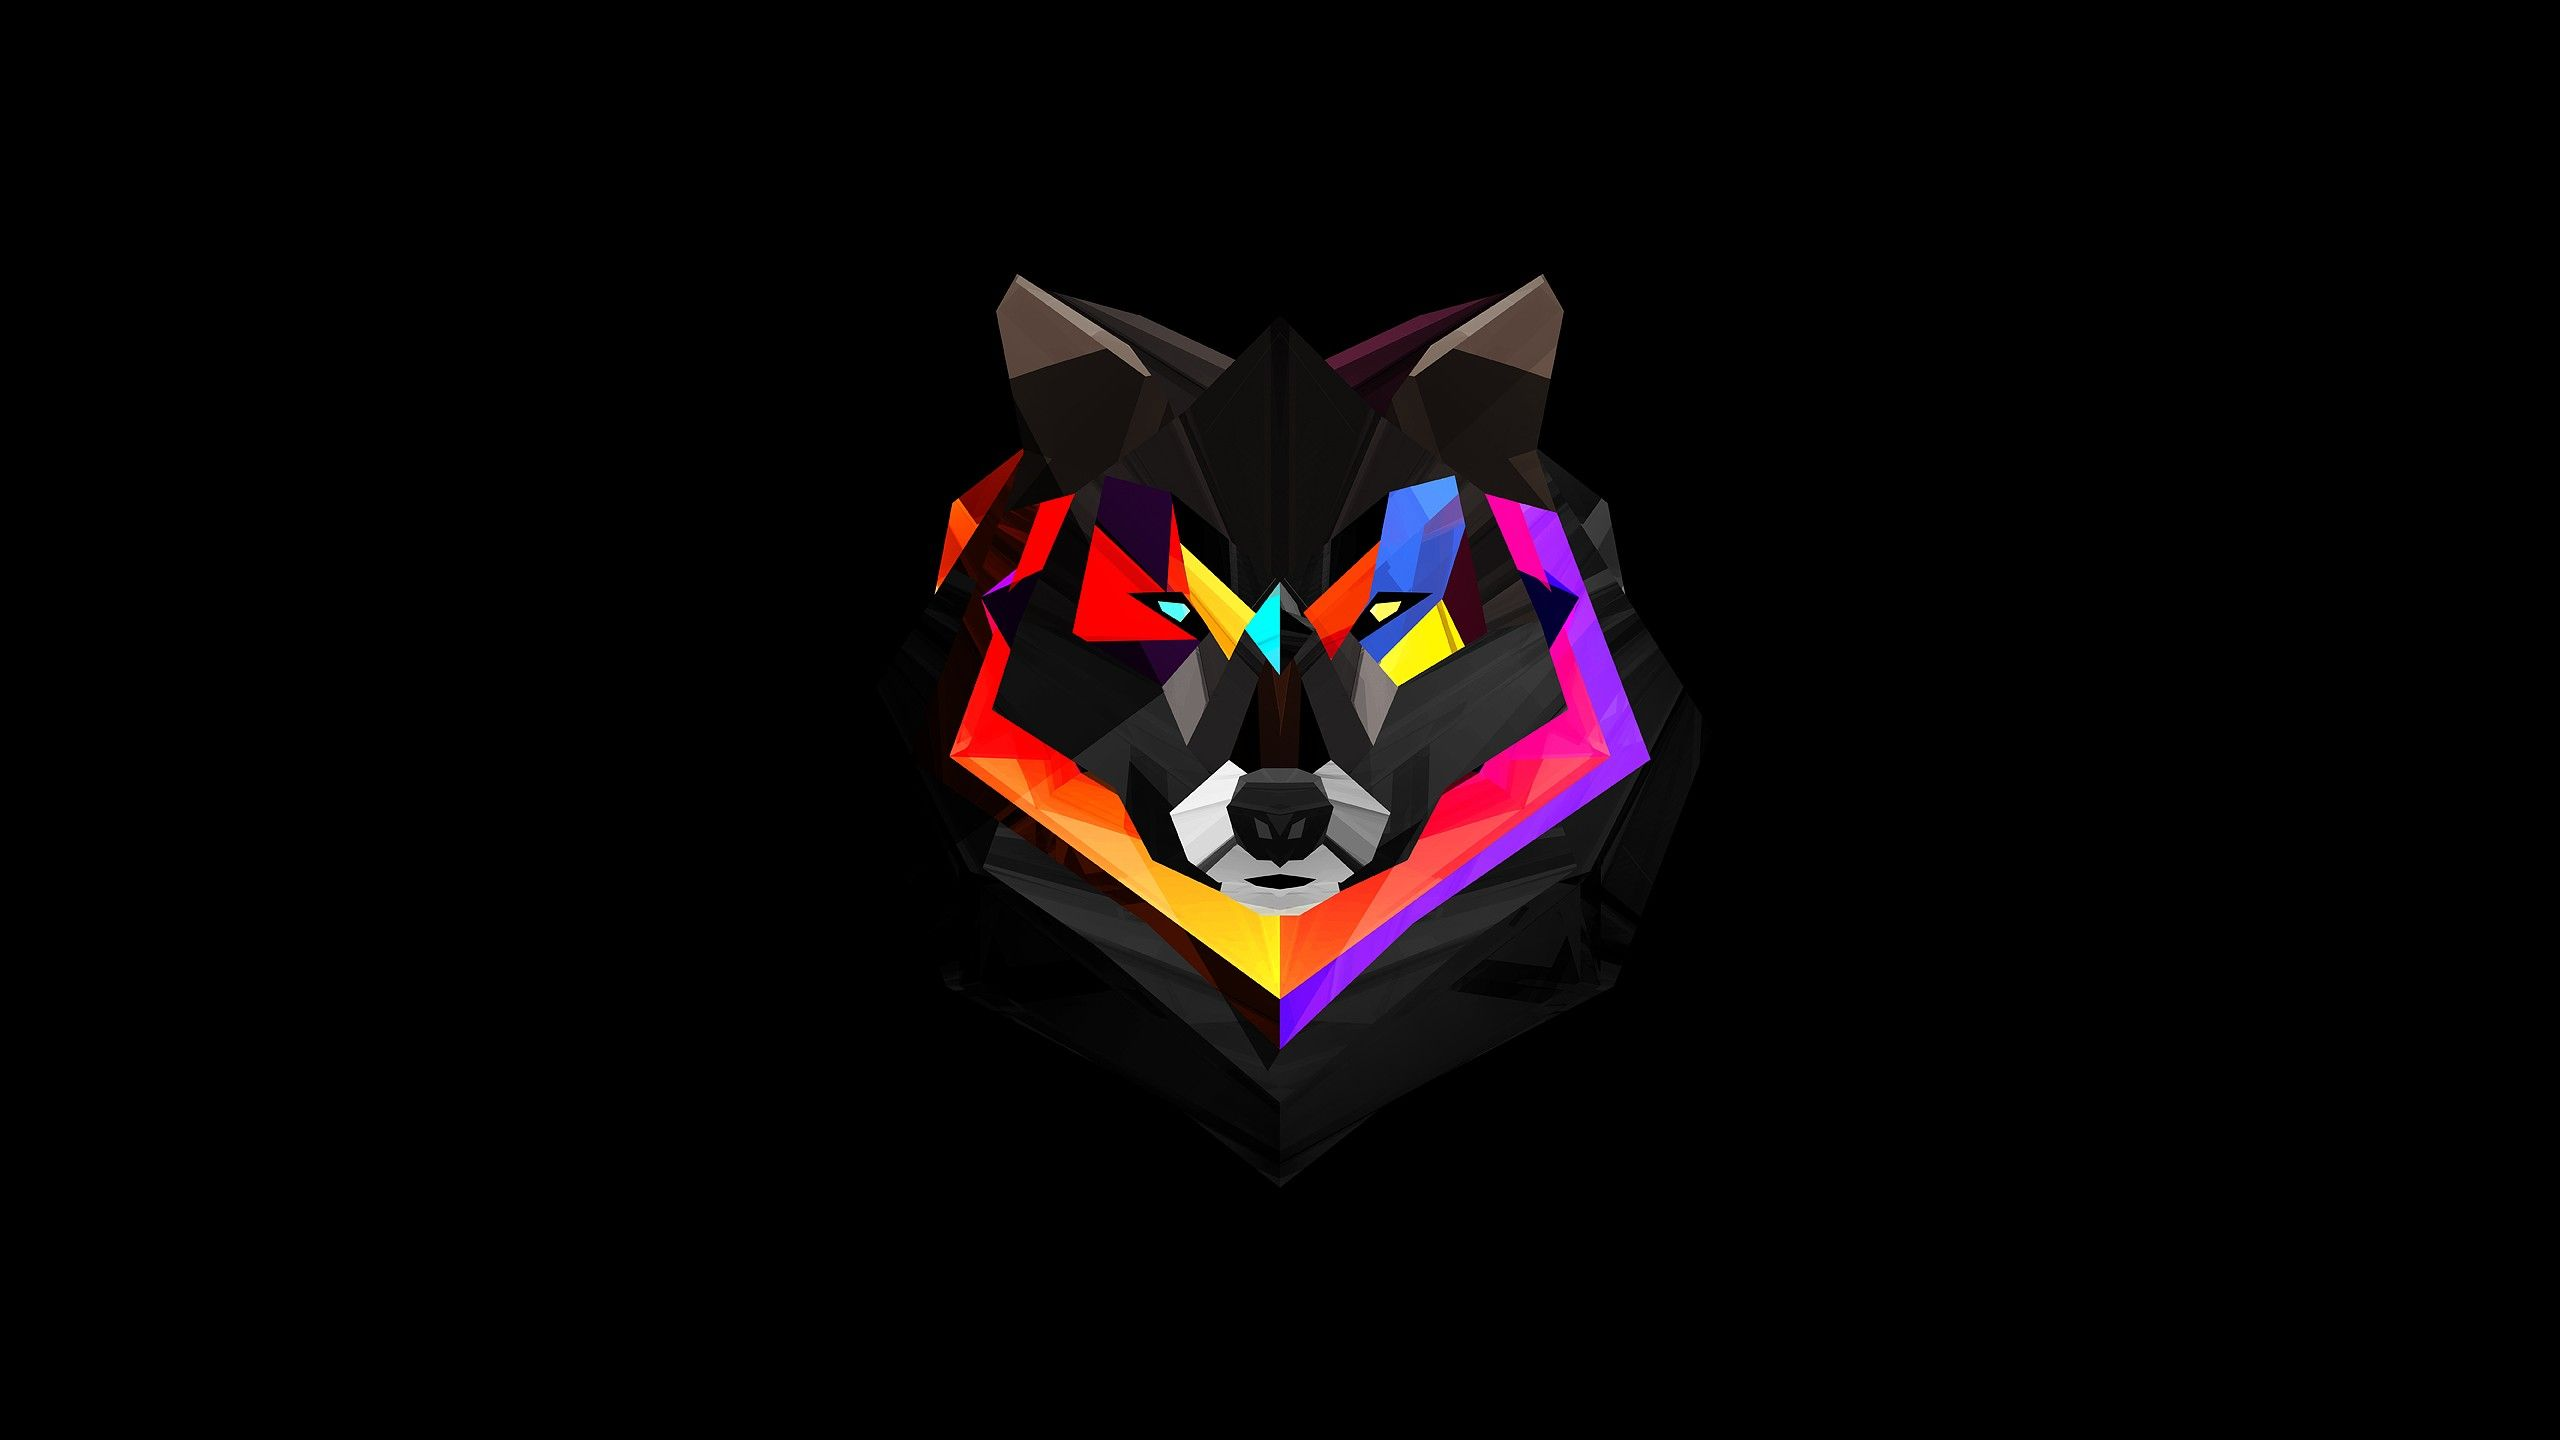 Abstract Animals Digital Art Justin Maller Black Background Wolves Wallpaper 2940341 Wallbase Cc Polygon Art Iphone 5s Wallpaper Wolf Wallpaper